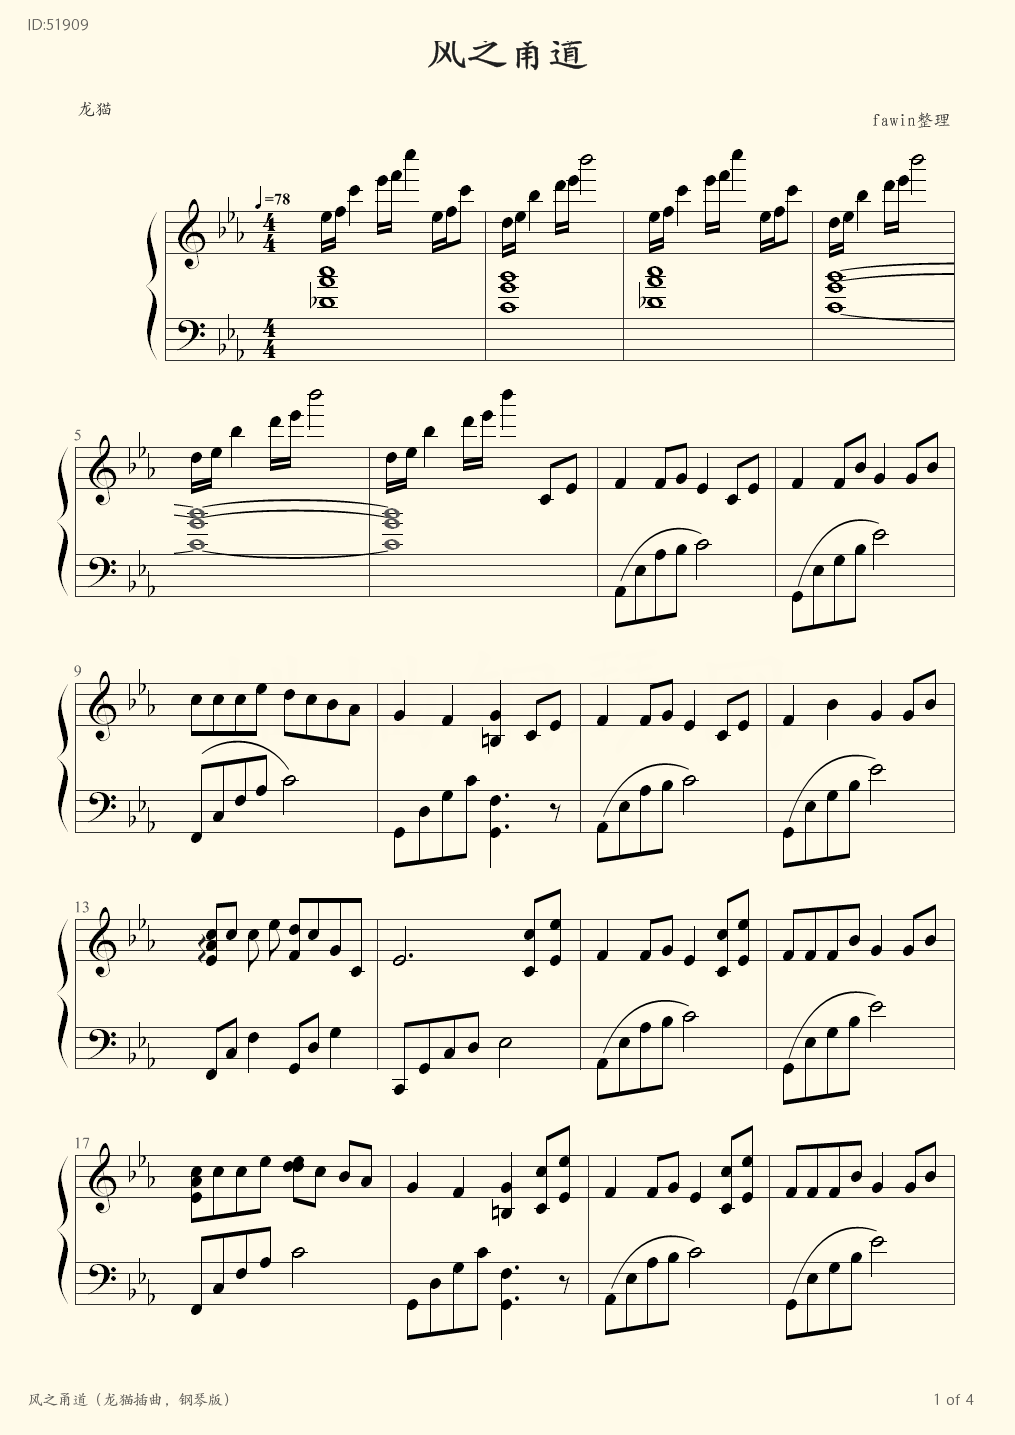 The Path of Wind - Joe Hisaishi - first page